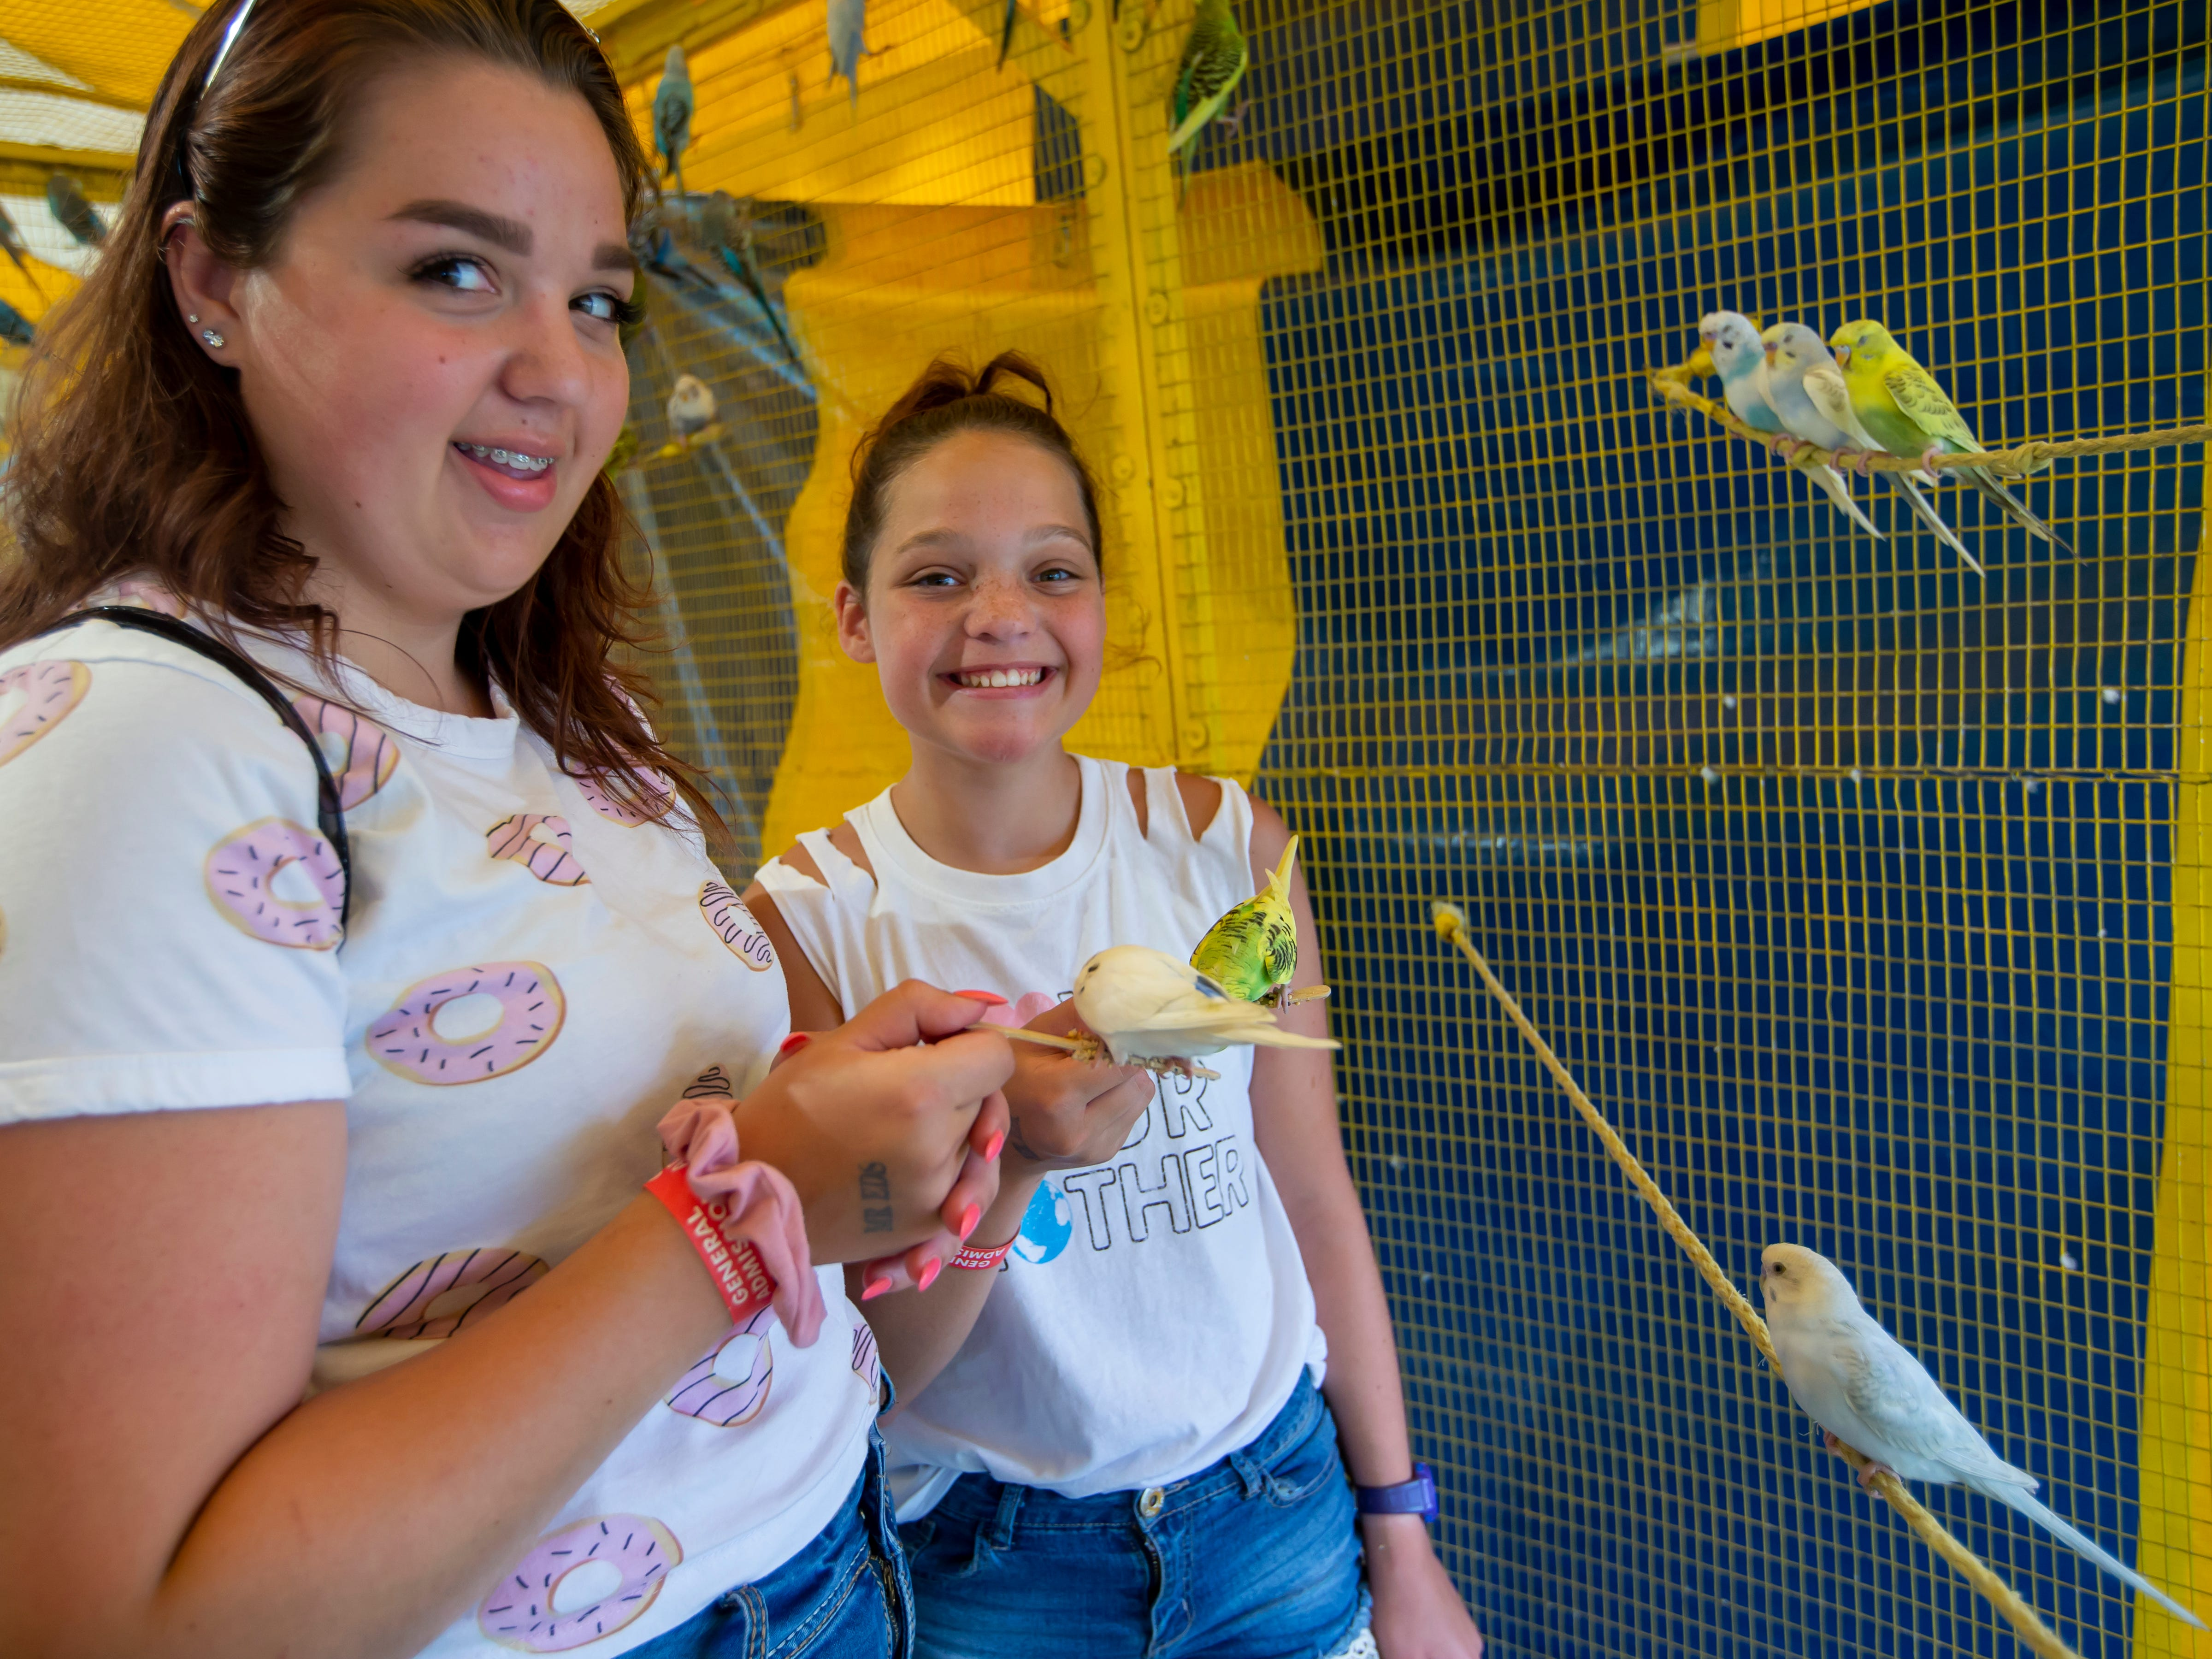 Emma and Sophie Graff visit with the parakeets in the petting zoo at the Winnebago County Fair on Saturday, Aug. 4, 2018.